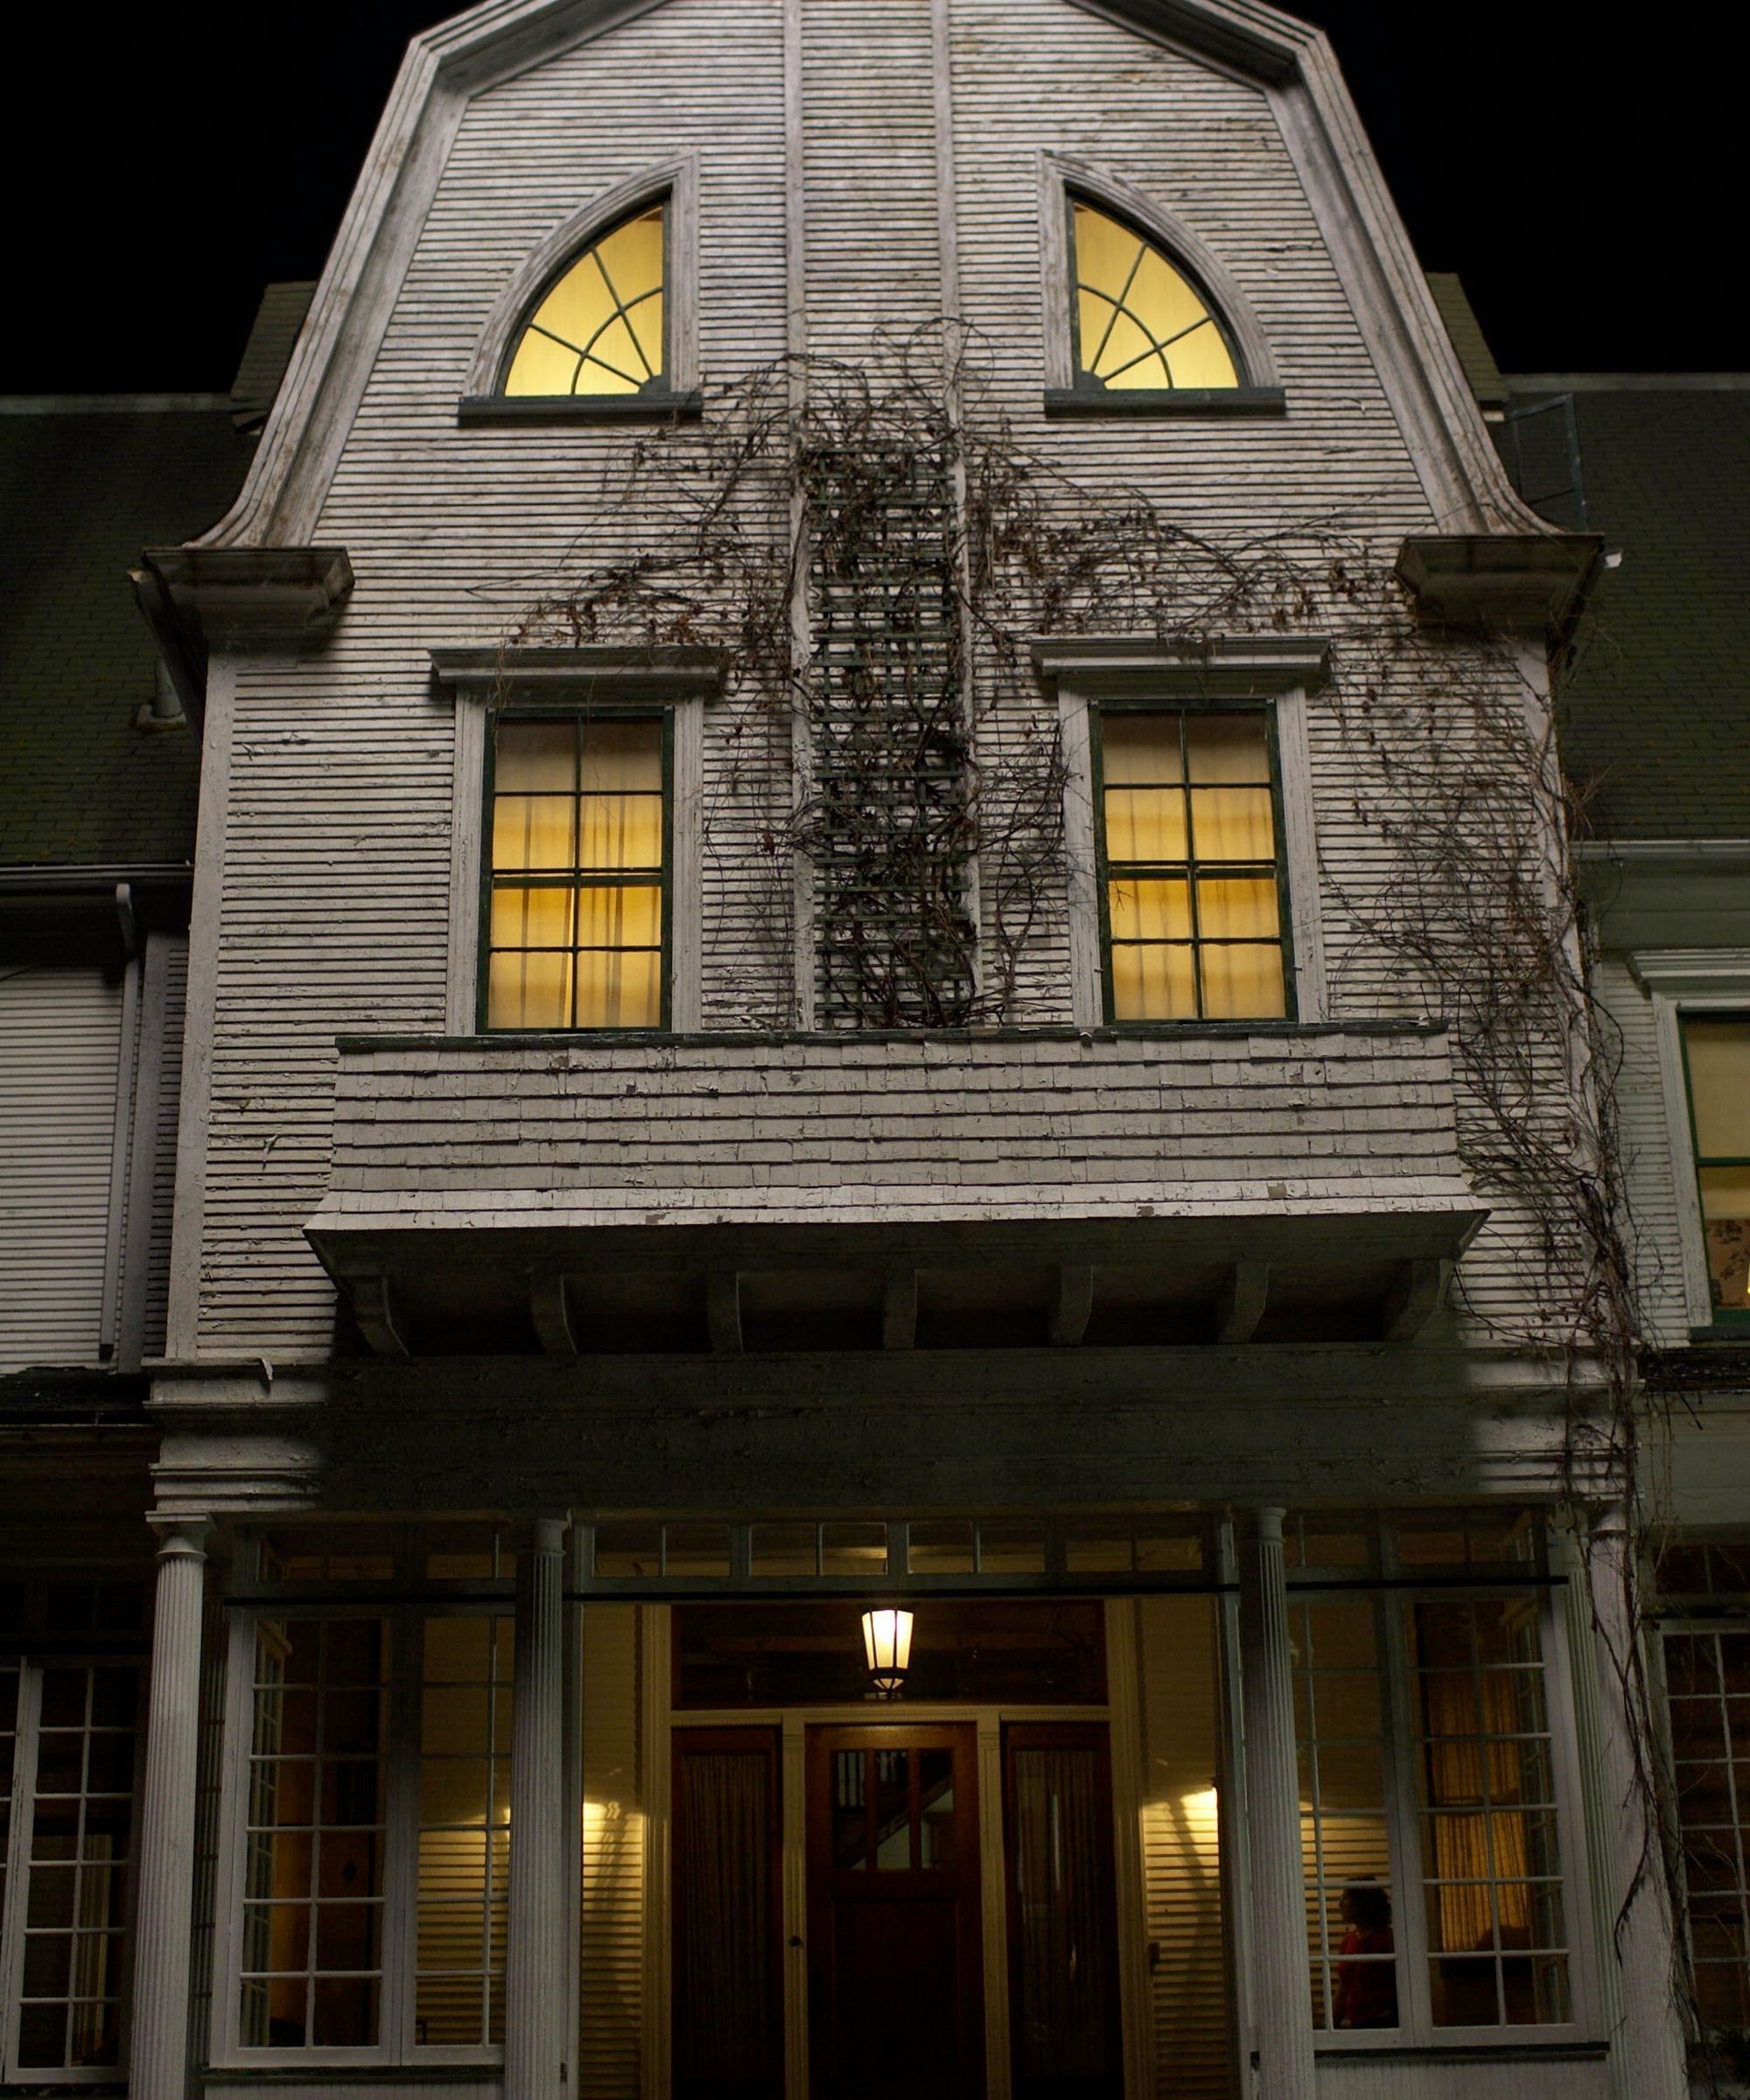 The 15 Creepiest Haunted Houses In Movies & TV (With